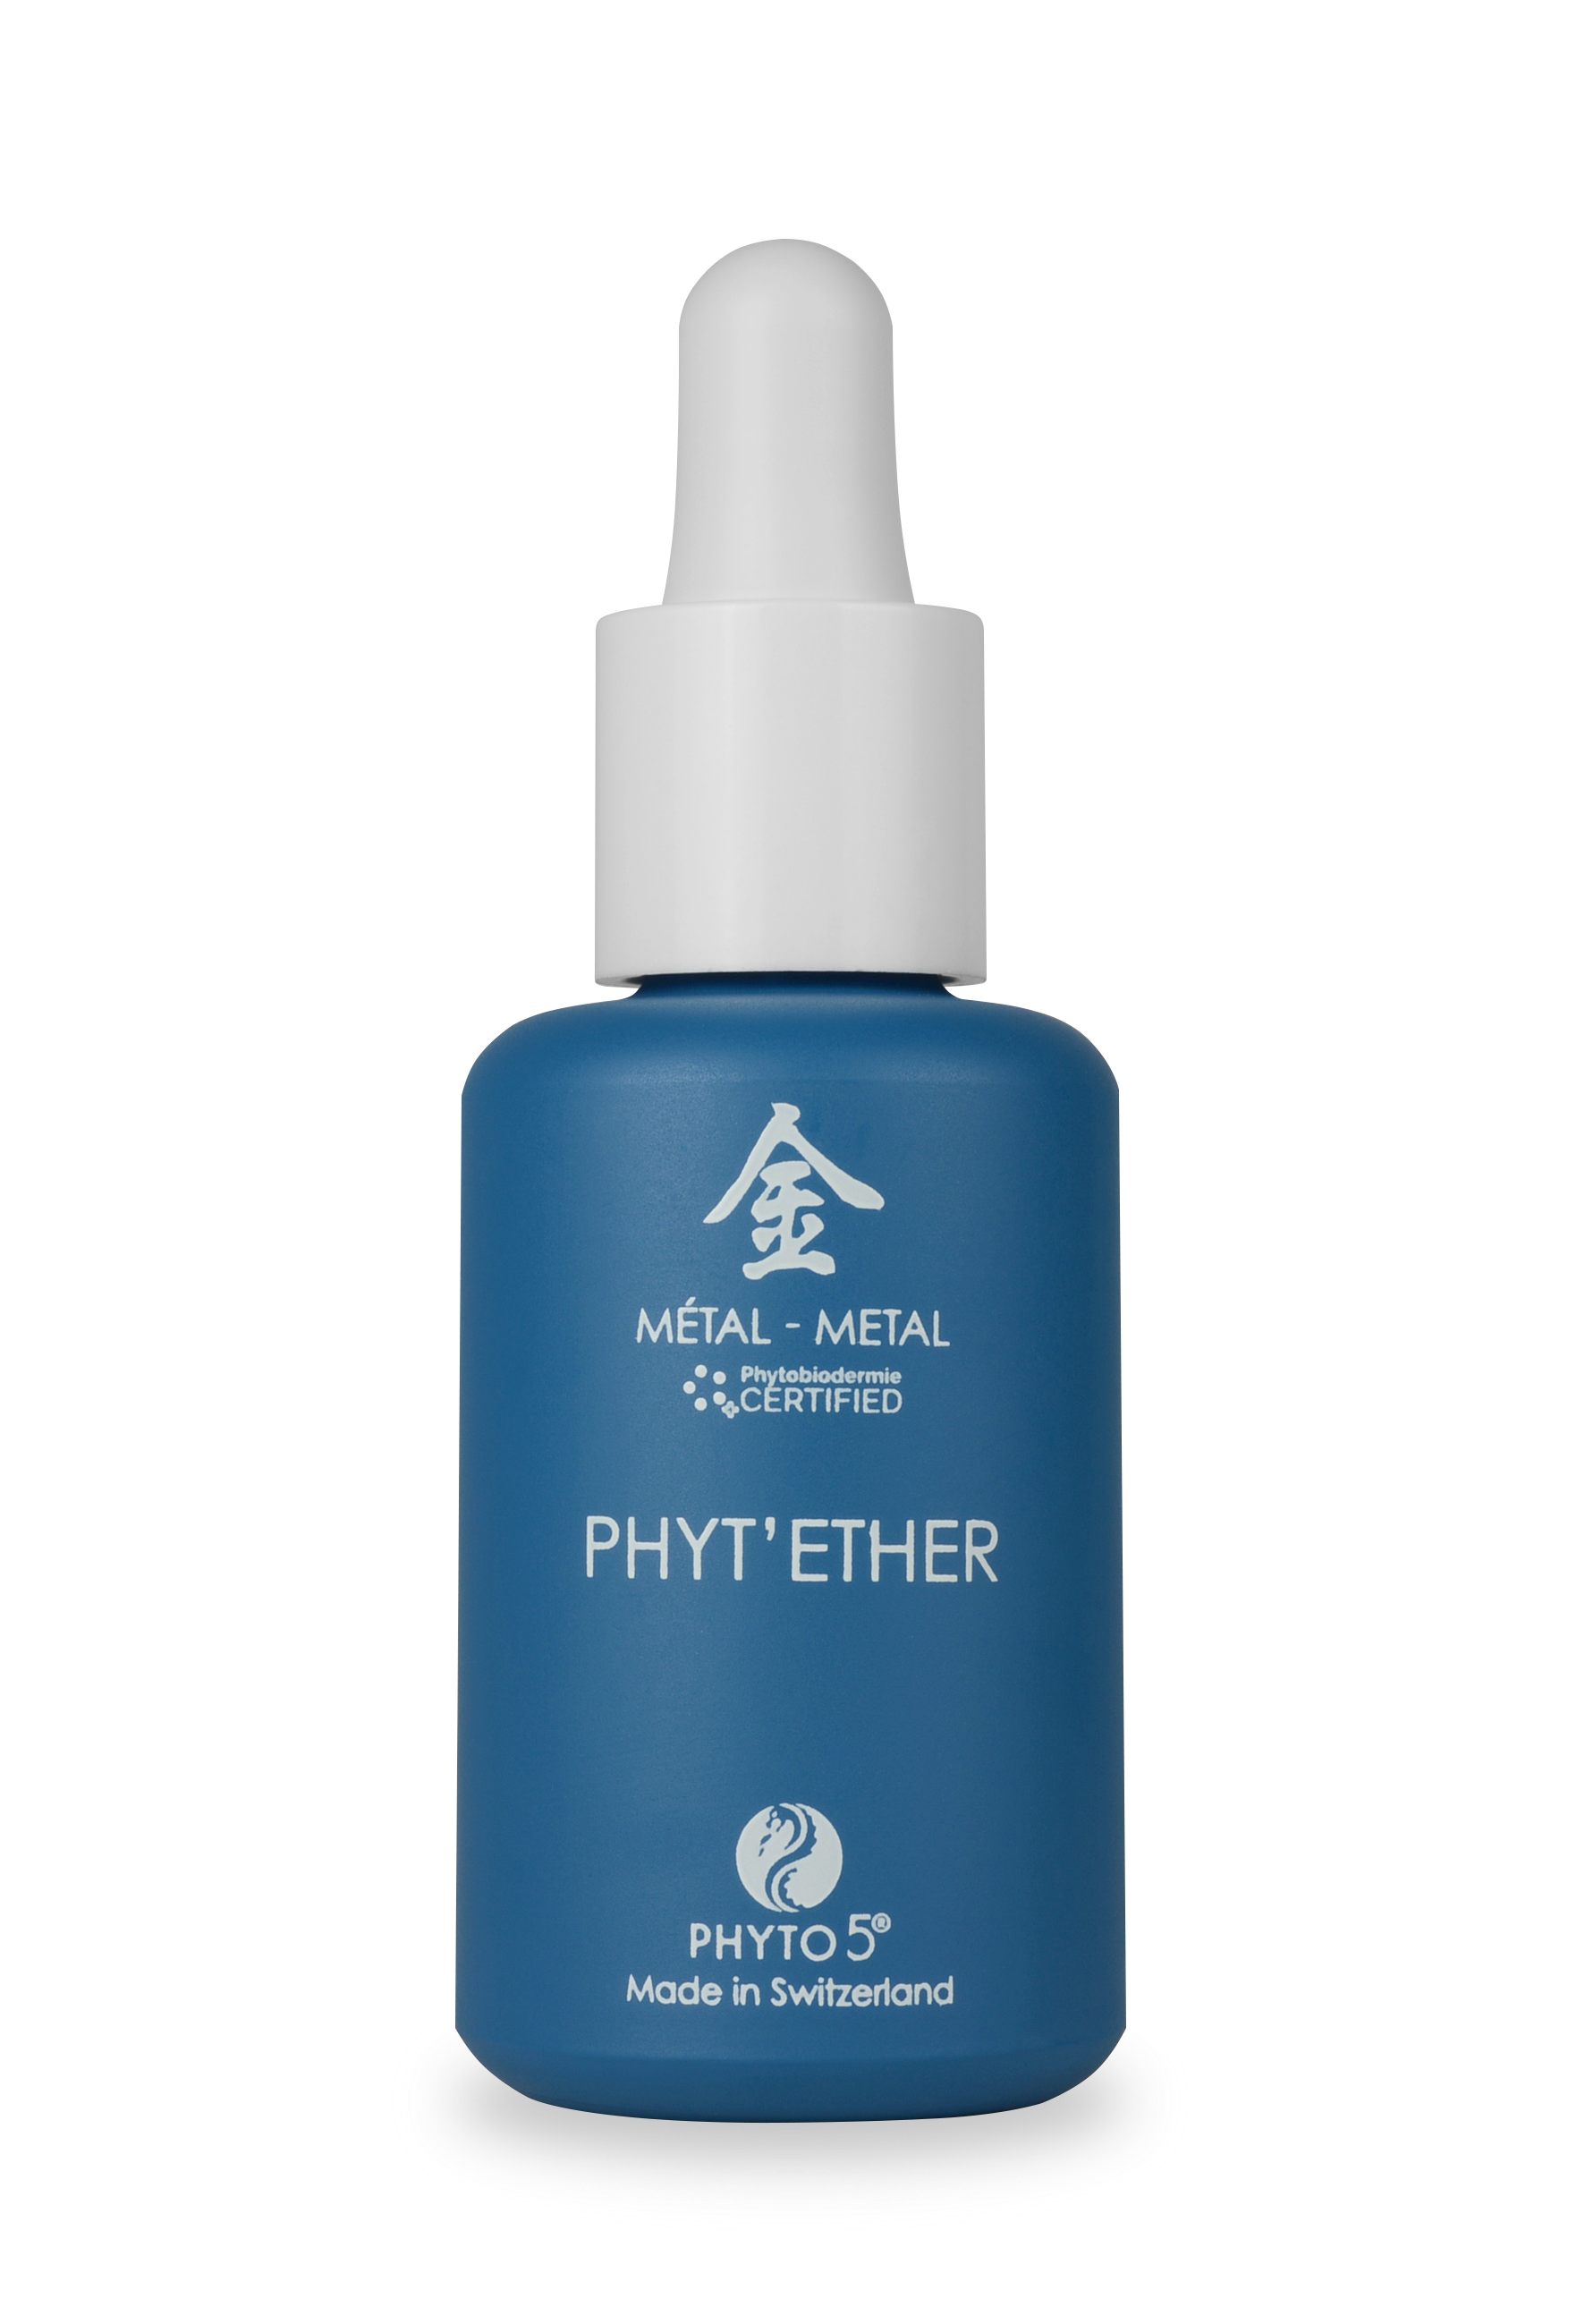 A 1 oz. bottle of Metal element Phyt'Ether serum for face and body